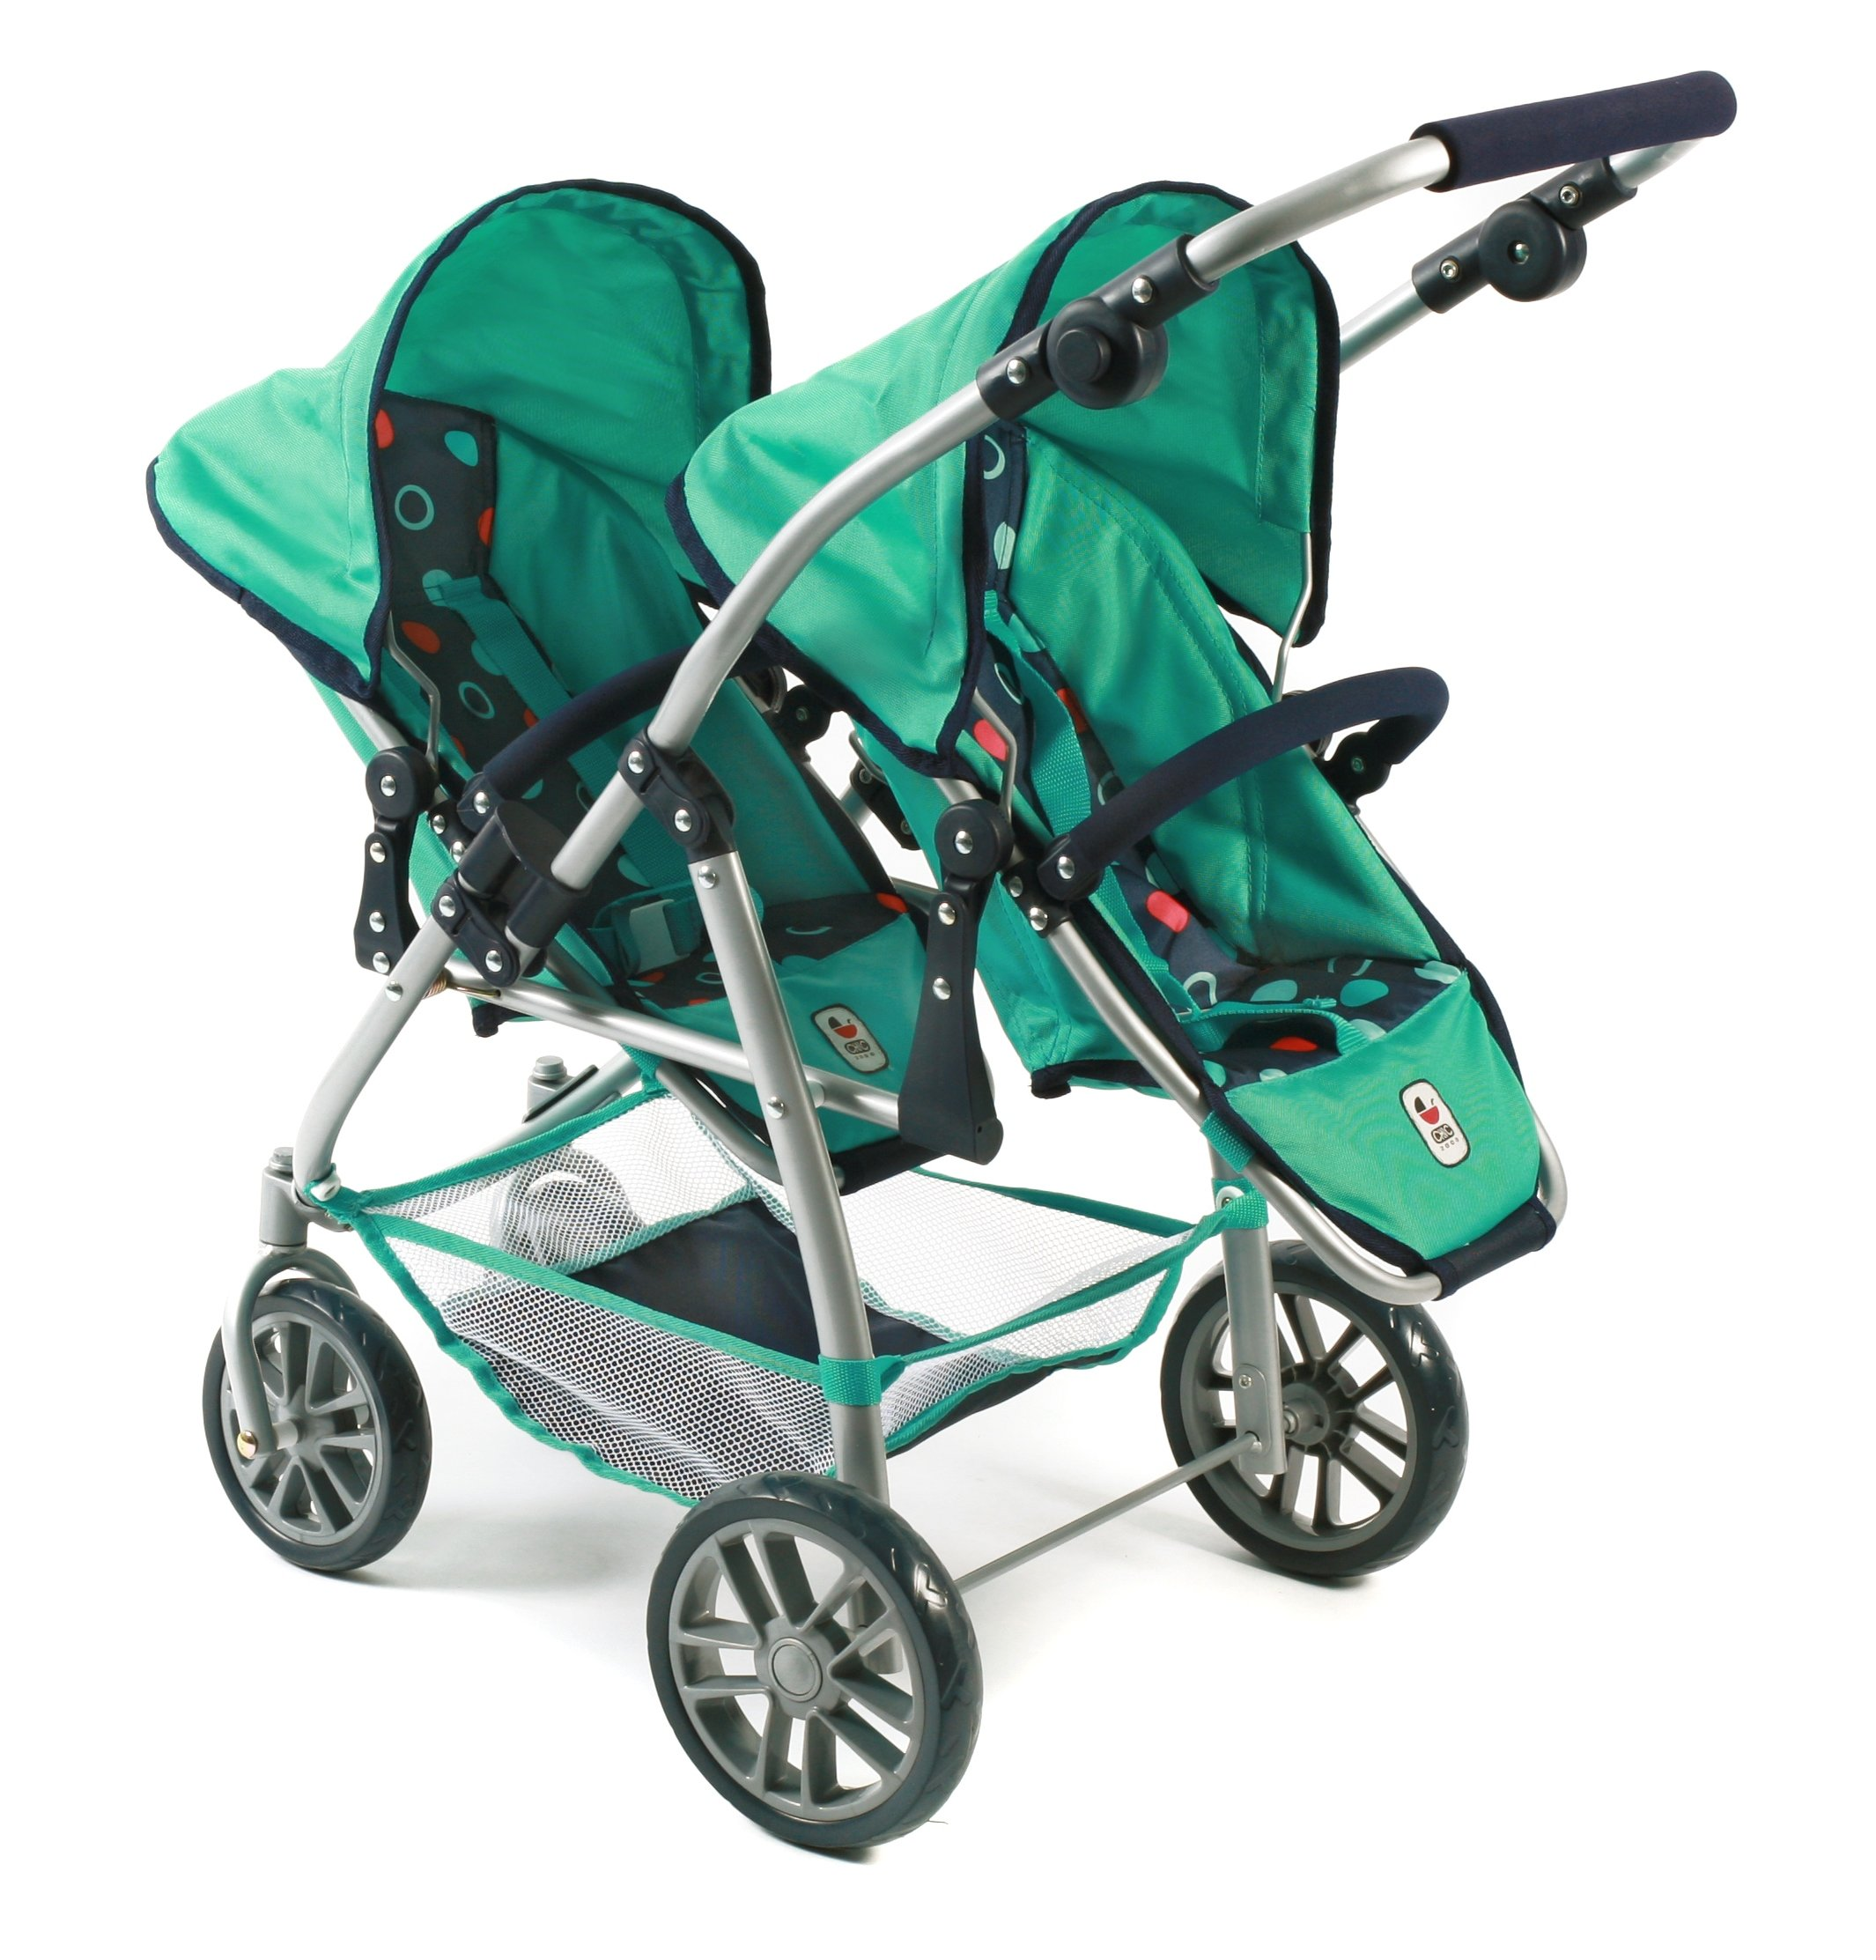 Bayer Chic 2000 689 21 Doll pram, Mint Bayer Chic Modern twin pushchairs with two removable and to be in a lying position adjustable Sport seating The seat of your Twin trolley are detachable and can be in multiple directions he tandem Buggy has a height-adjustable slider from 55 - 33 cm 1